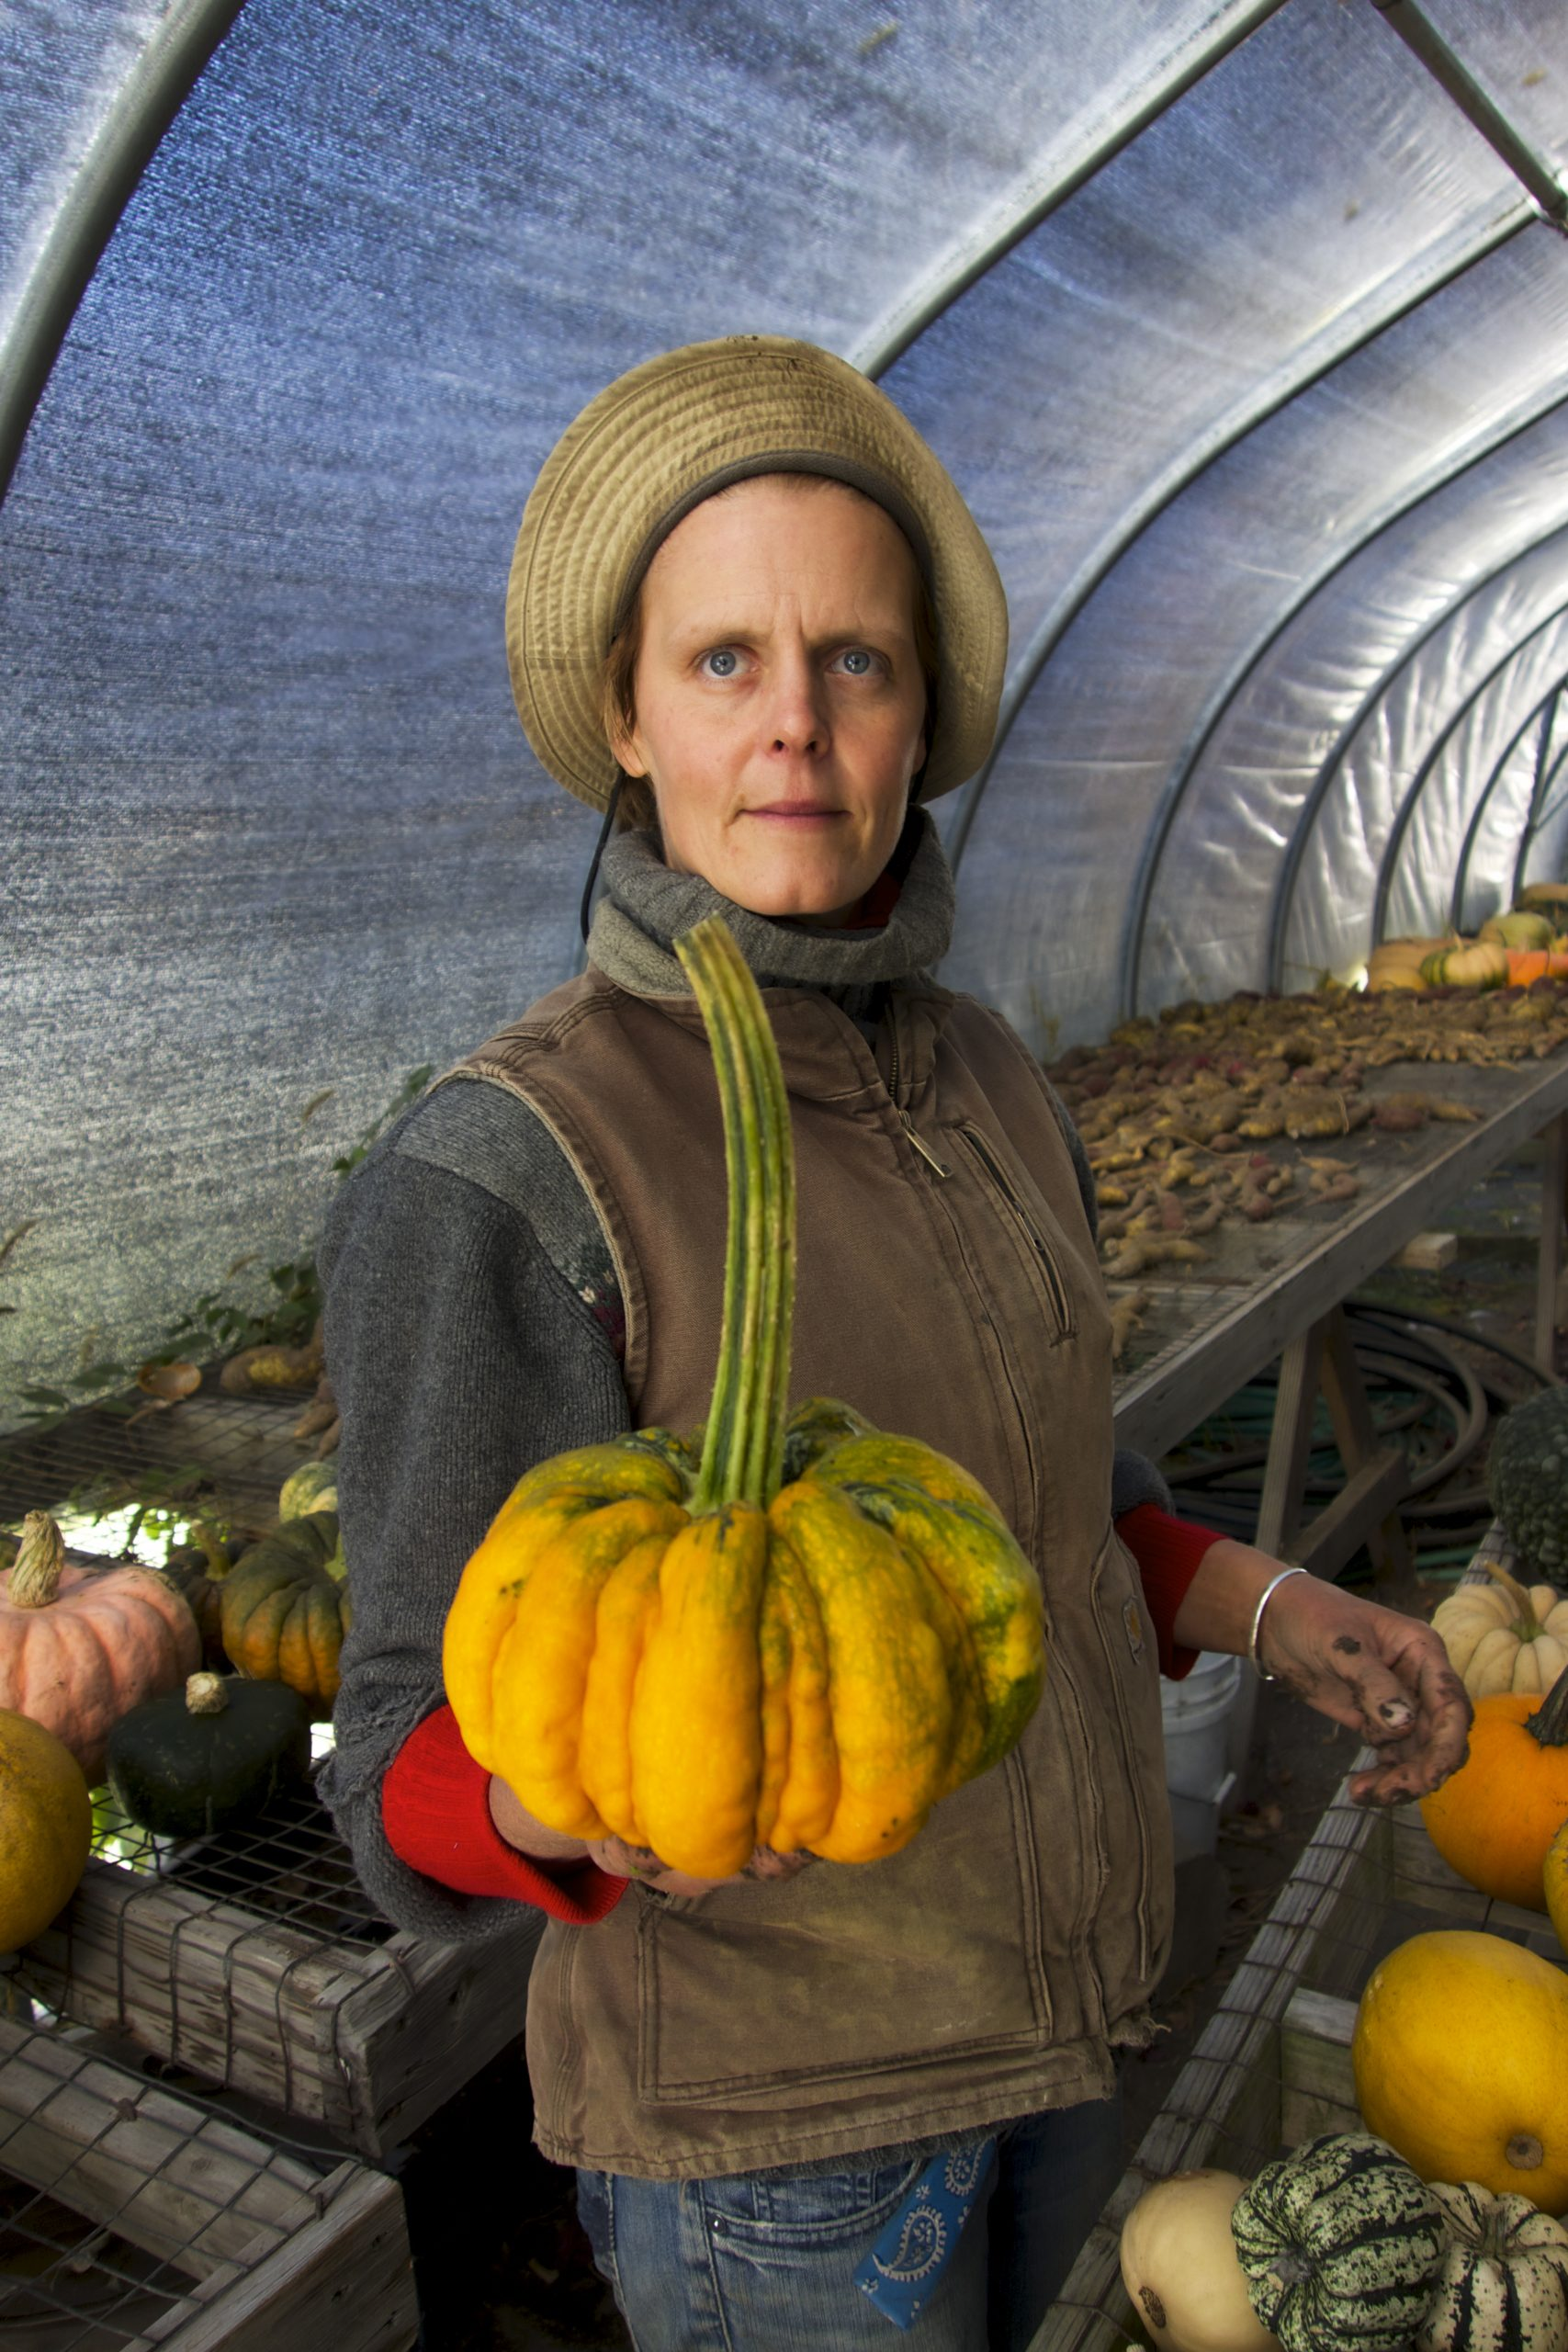 Patty Gentry in greenhouse holding up pumpkin with very long stem